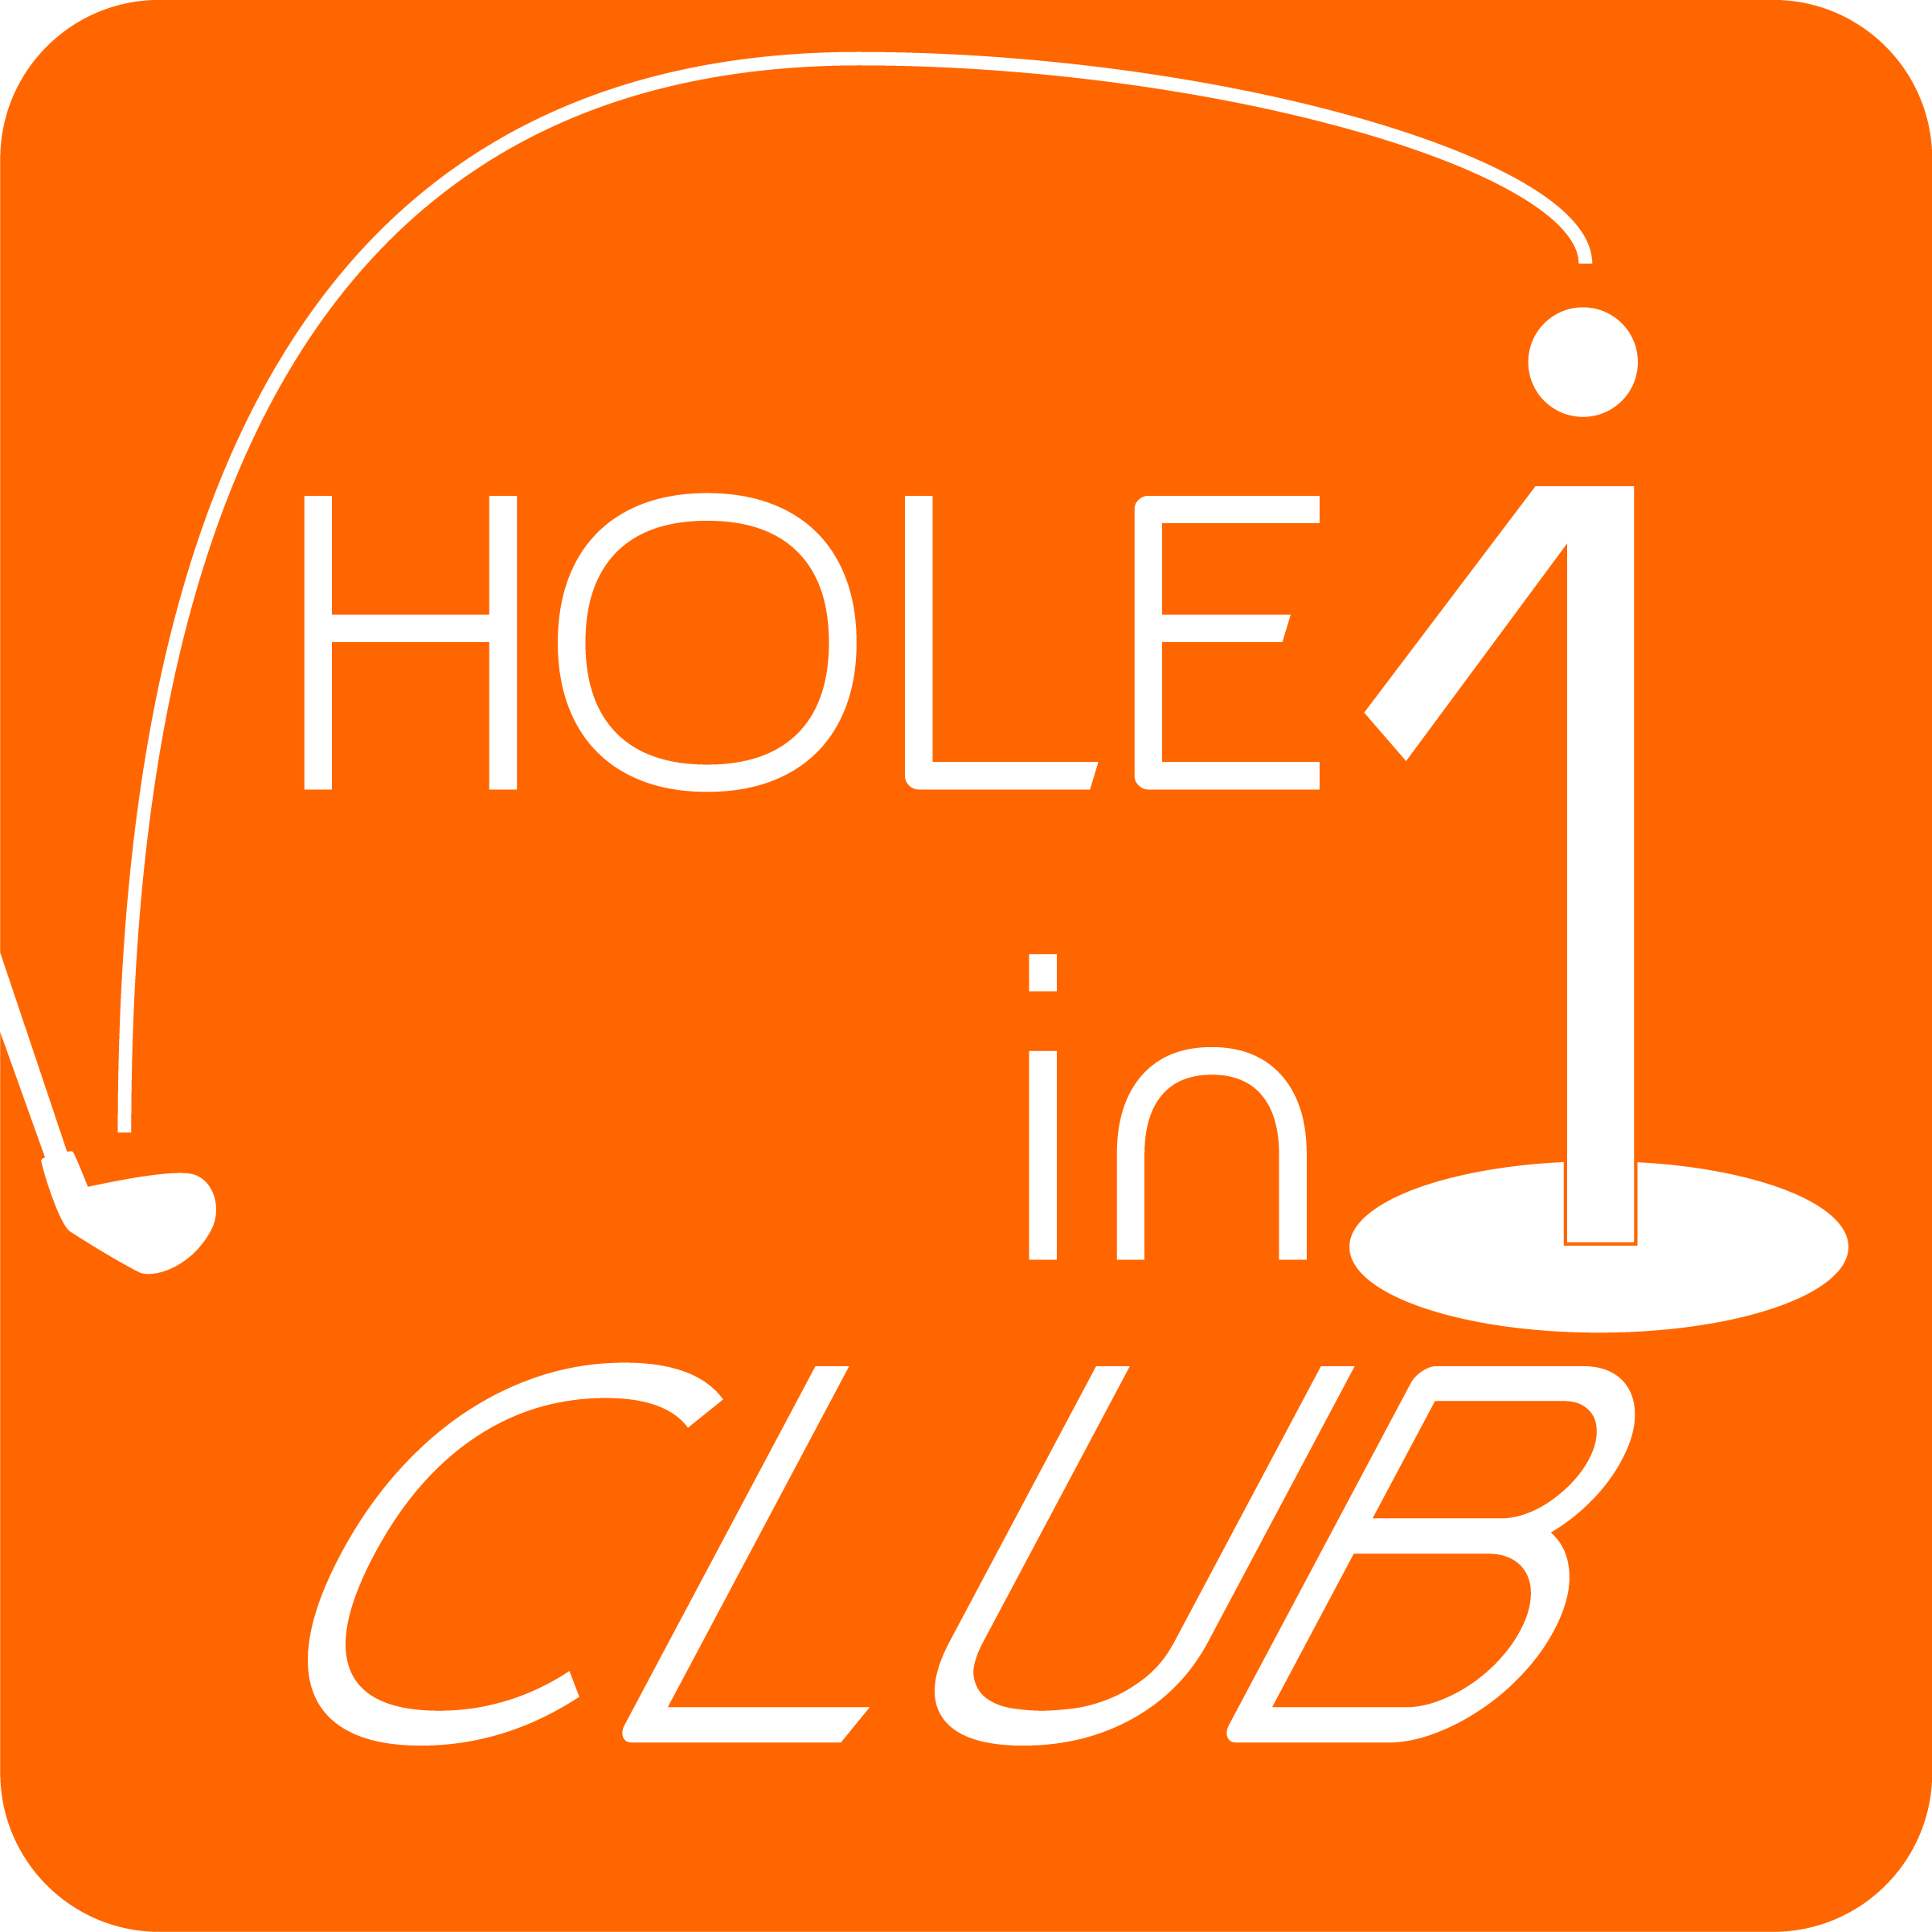 Hole in 1 Club